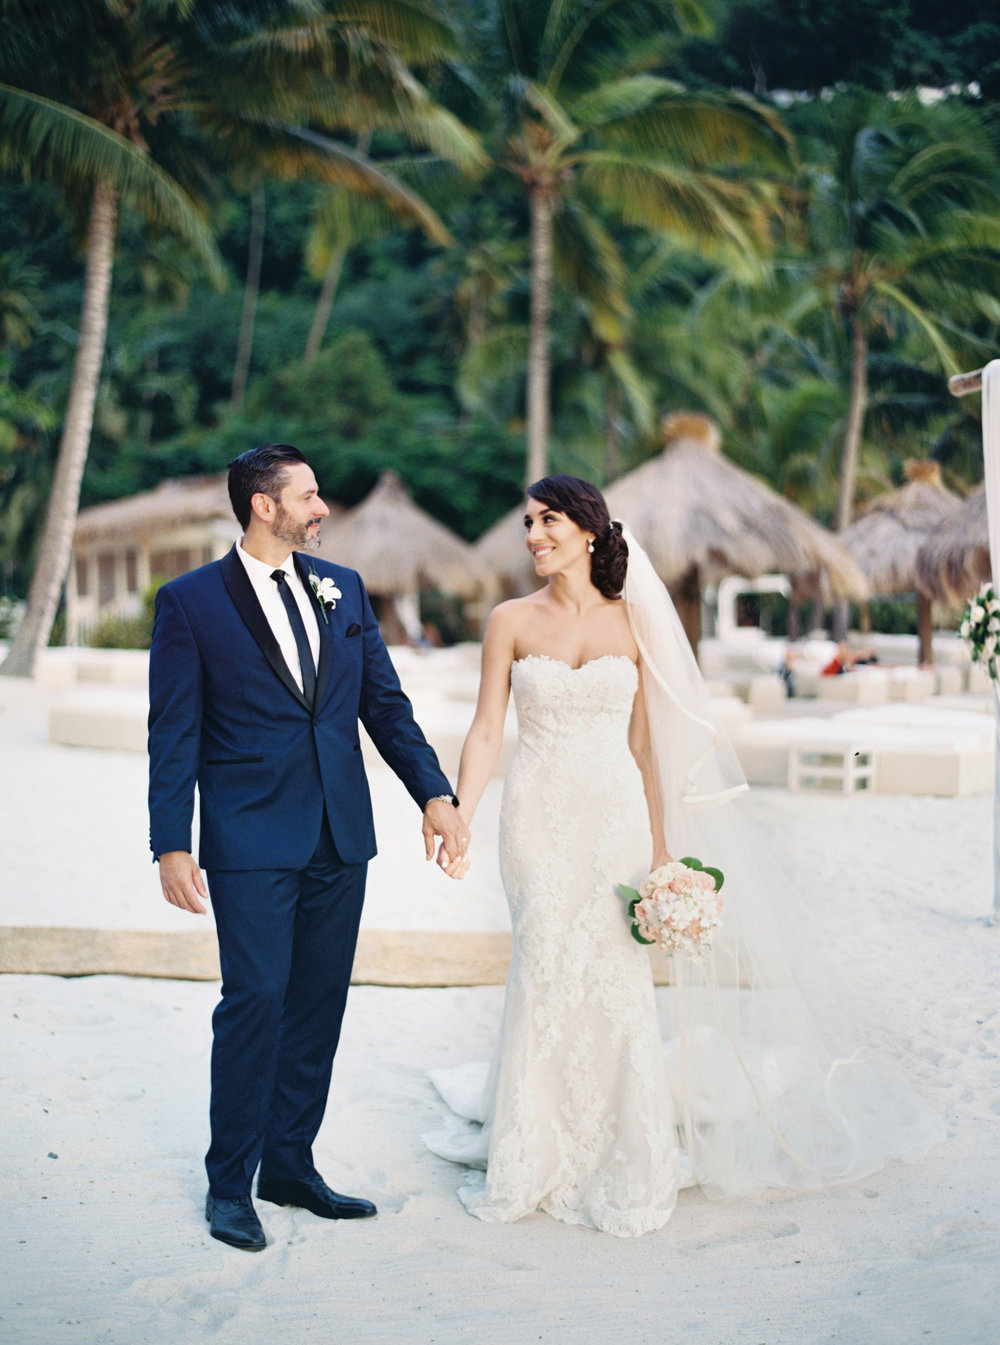 102Delmary's & Daniel : ELOPEMENT : ST. LUCIA : CARIBBEAN : PHOTO & VIDEO : DESTINATION : OUTLIVE CREATIVE : 2016 .jpg